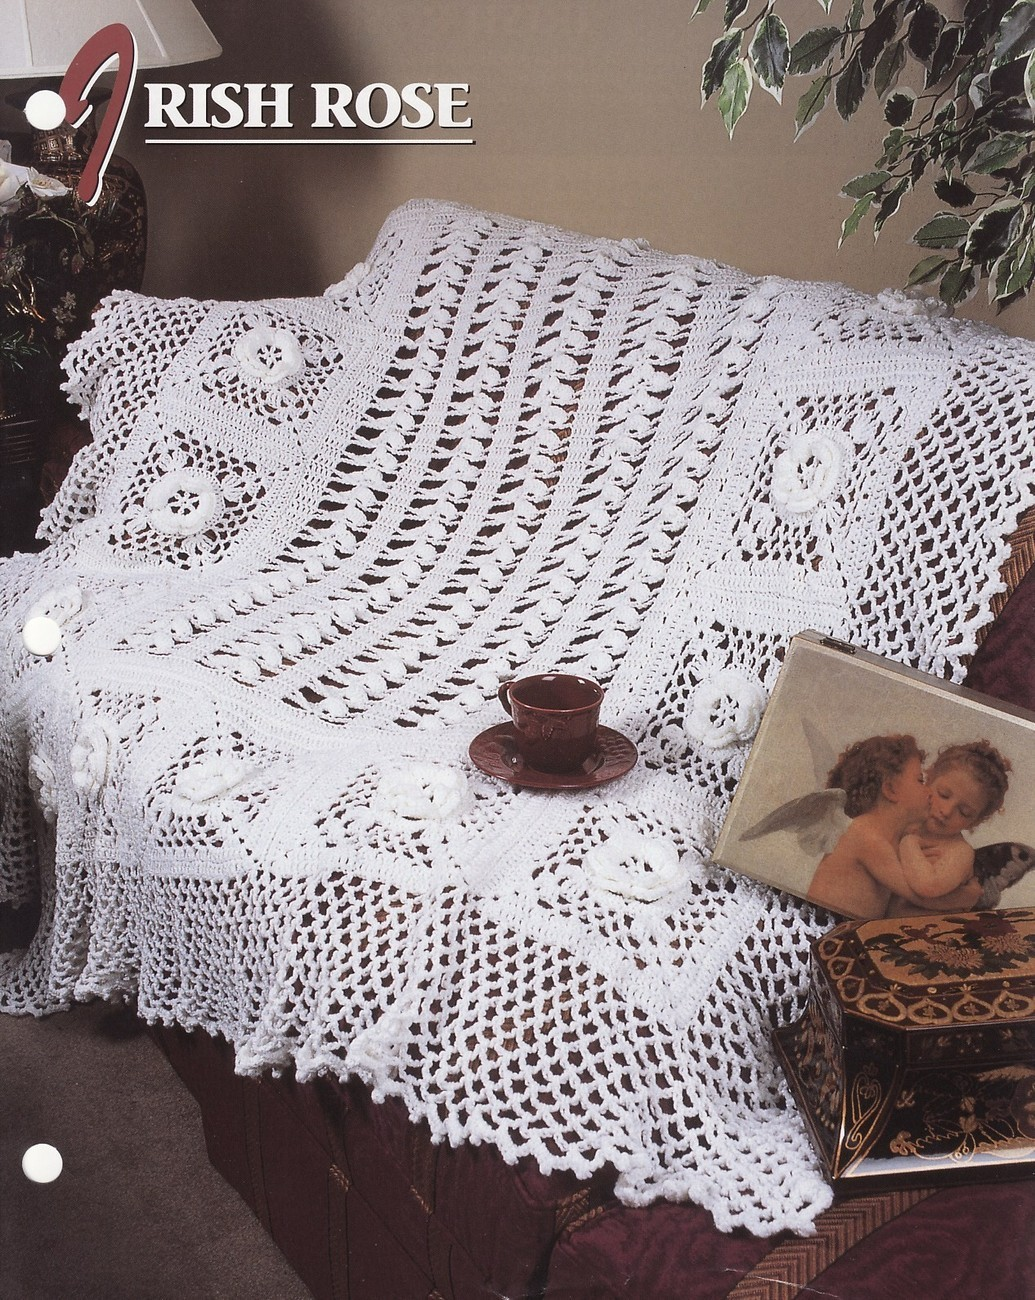 Crochet Beginner Patterns Afghan : AFGHAN CROCHET PATTERN ROSE Patterns